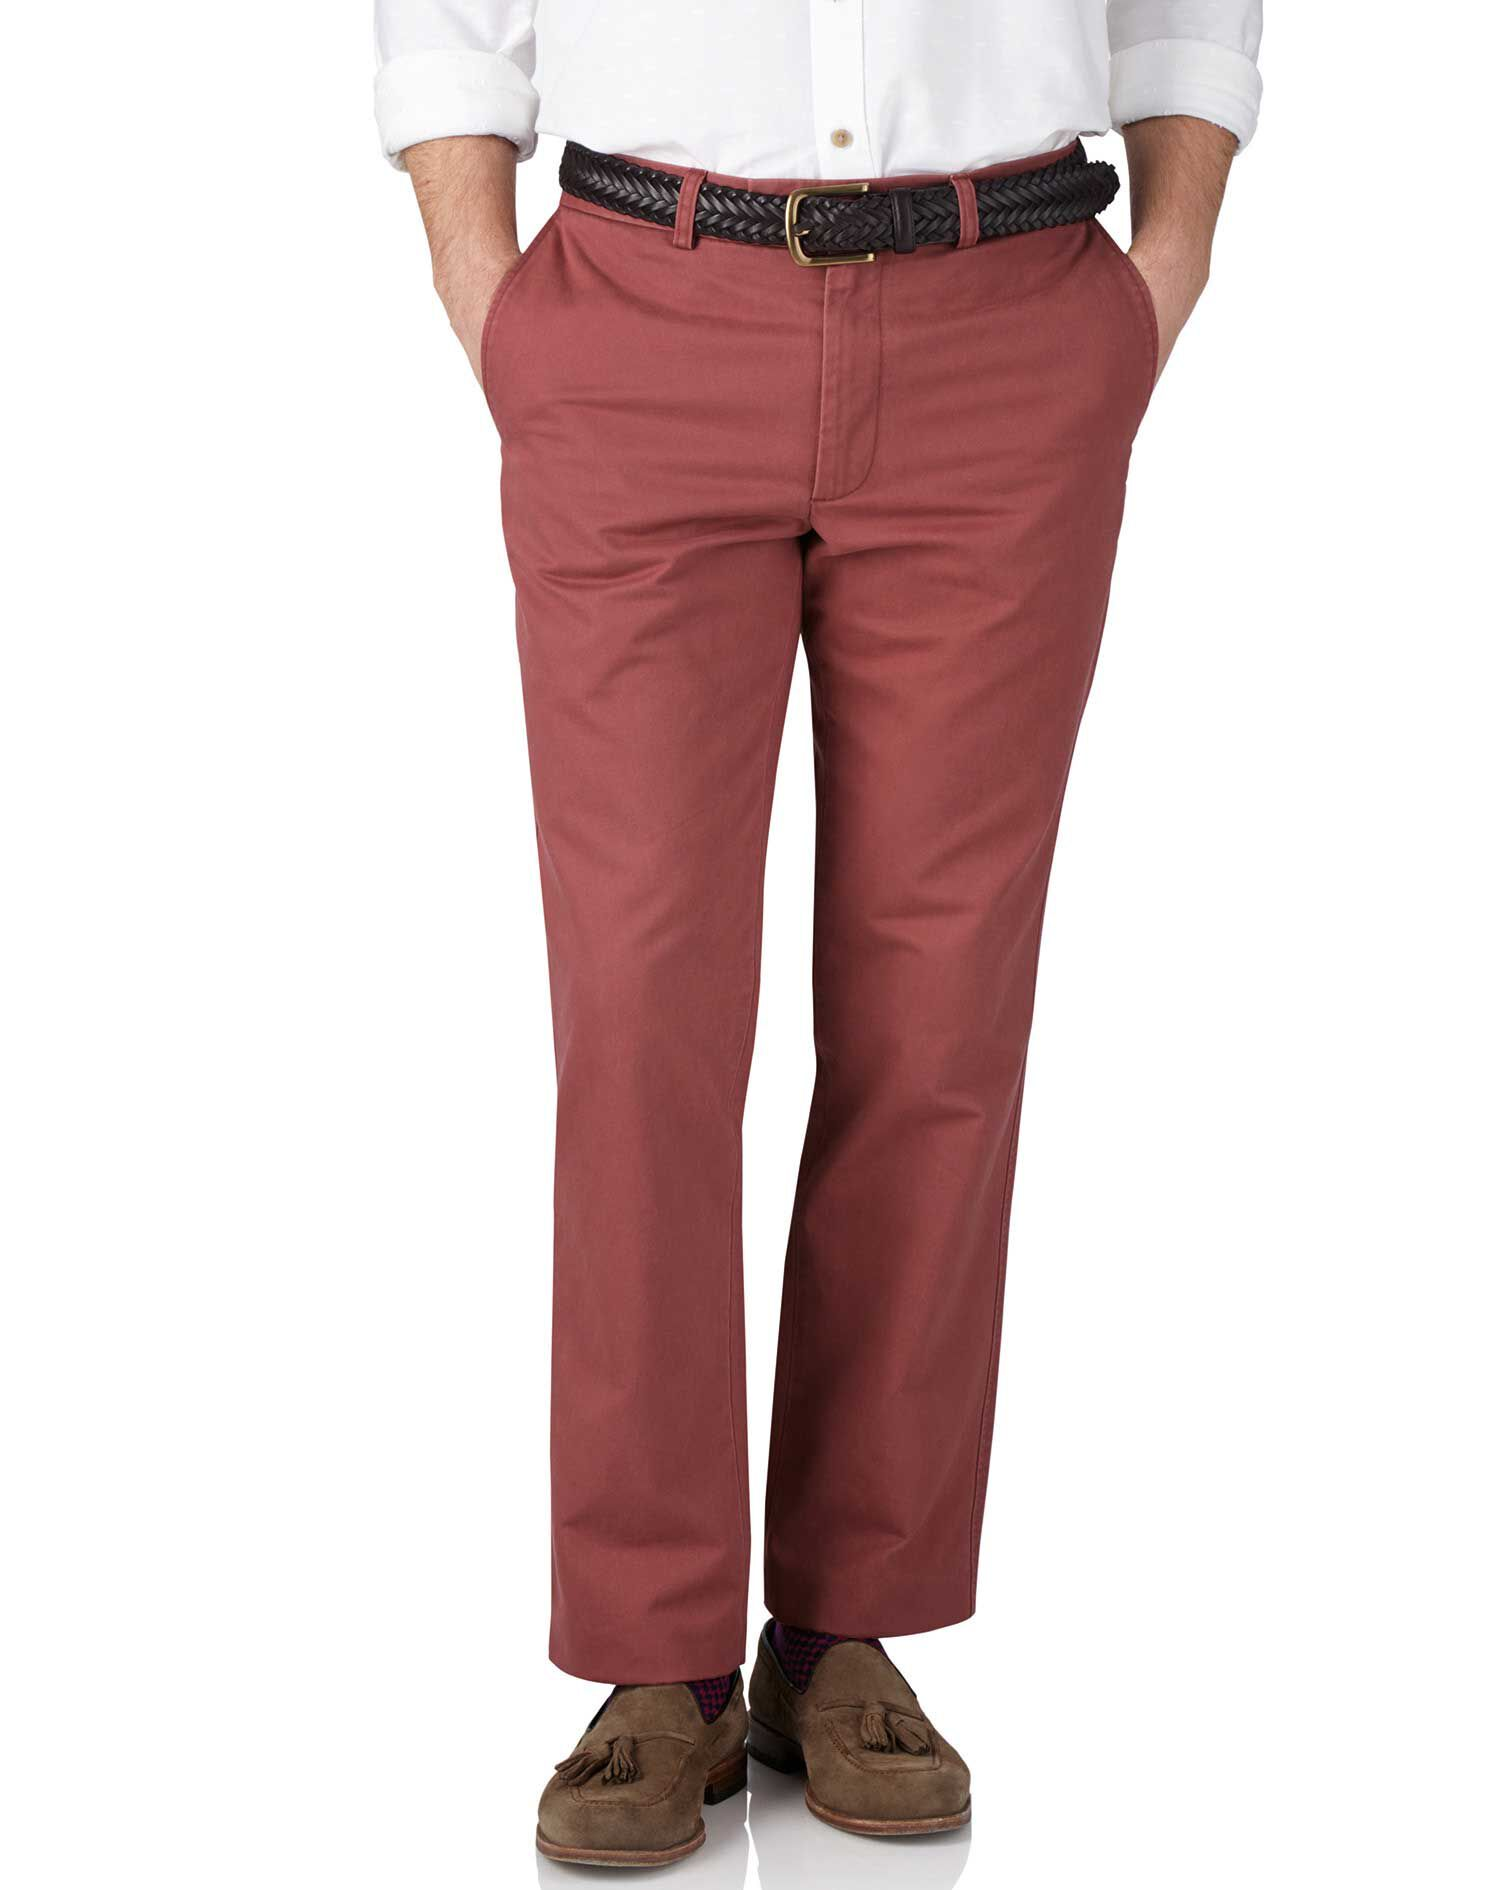 Light Red Slim Fit Flat Front Weekend Cotton Chino Trousers Size W32 L32 by Charles Tyrwhitt